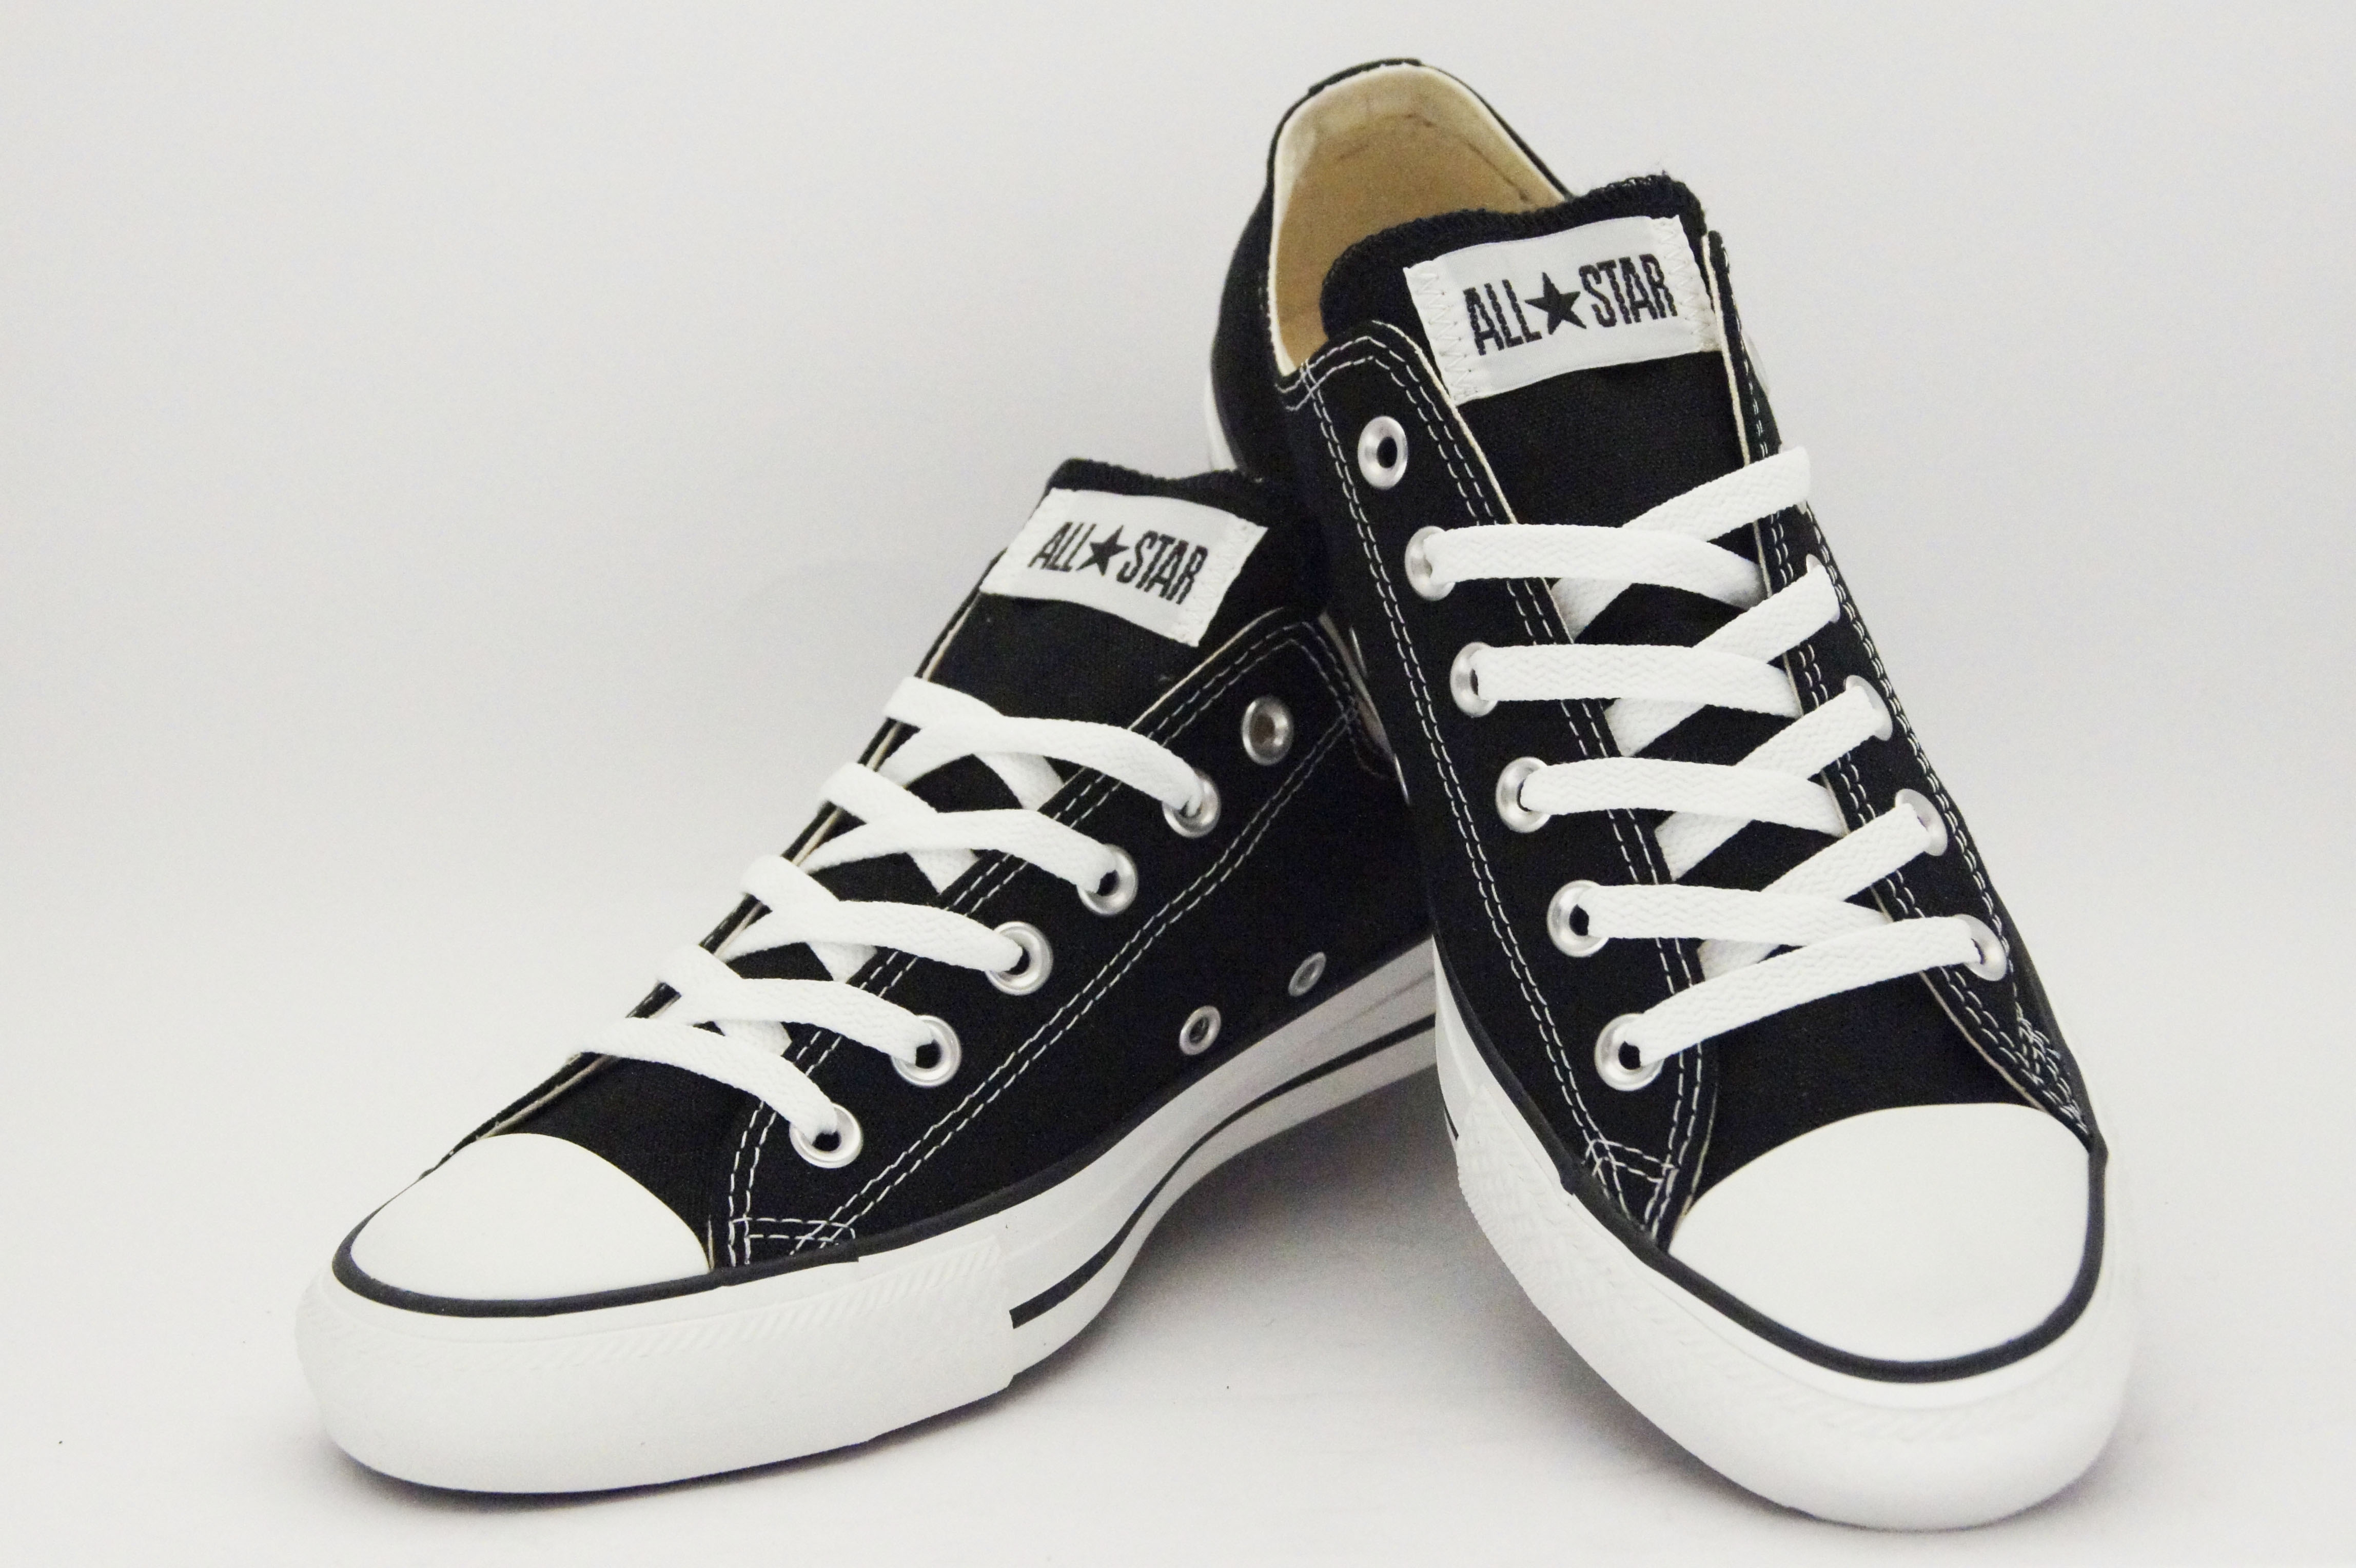 a39b19dc0cb Black Converse Shoes   Buy Discount Shoes from Asics and Converse ...